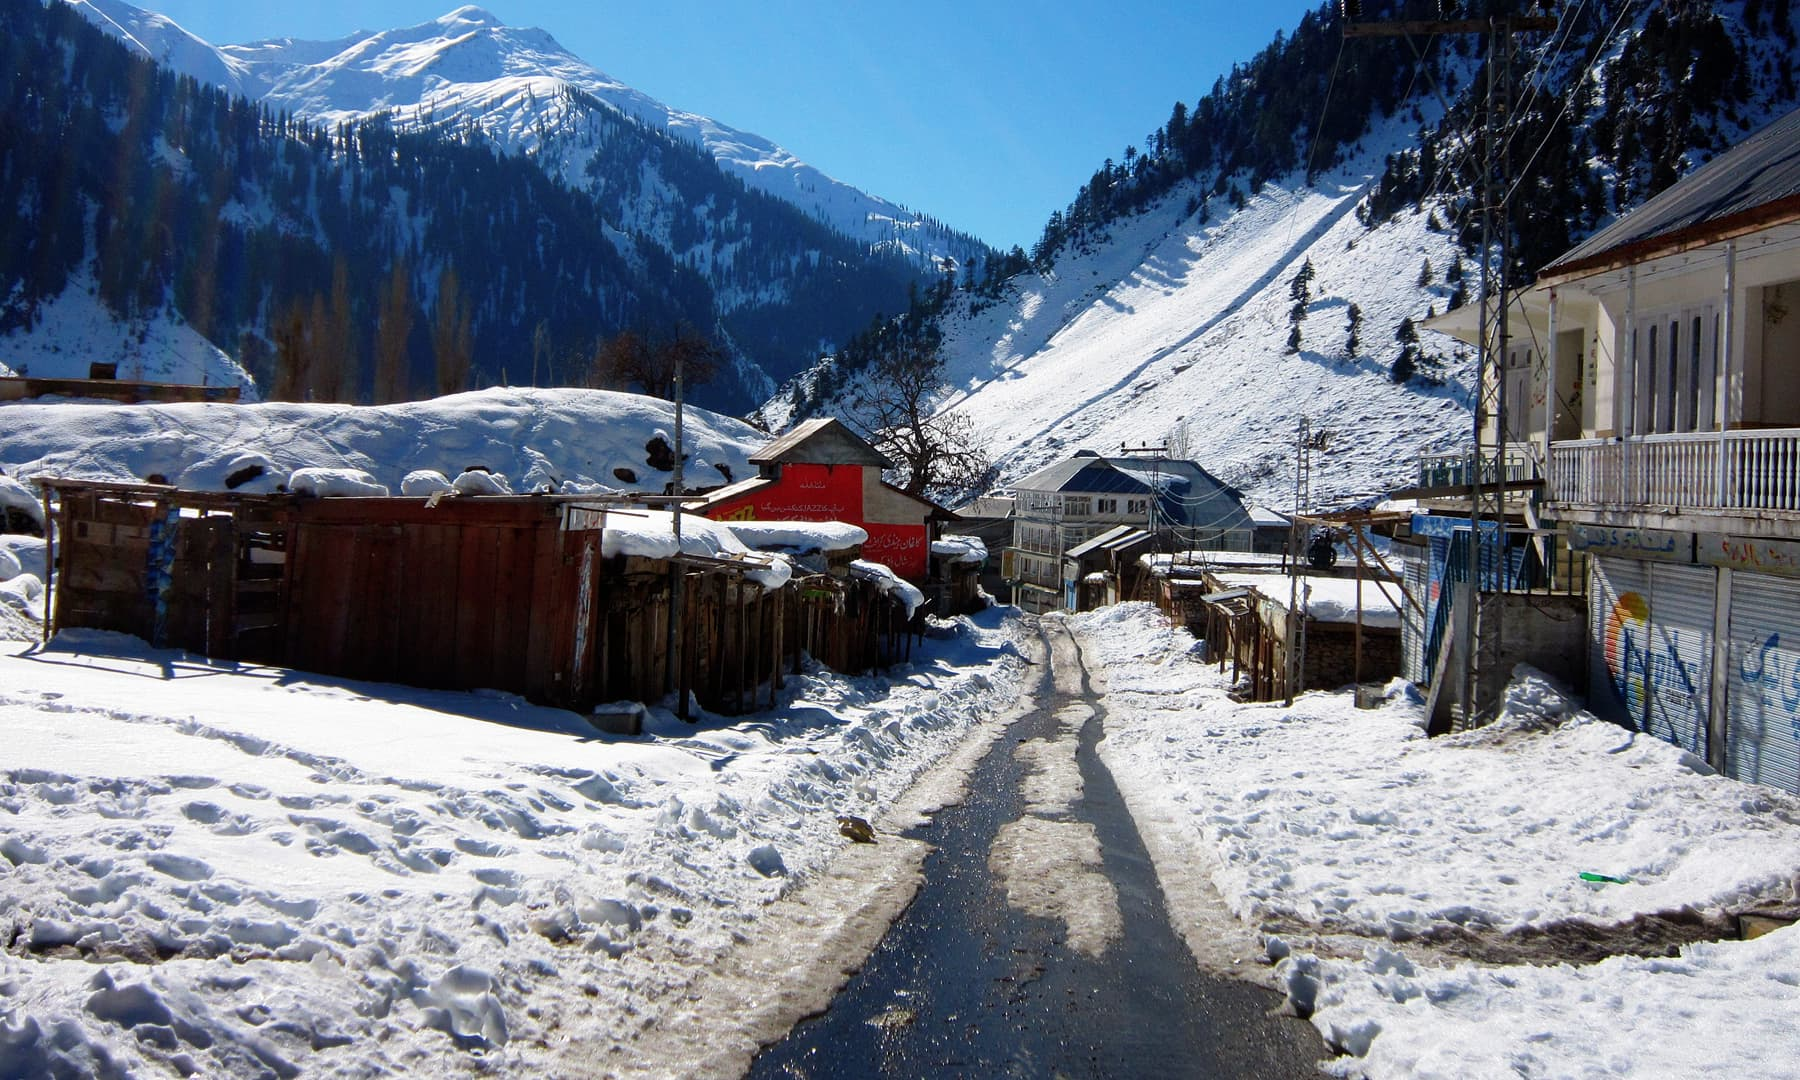 Naran bazaar in the winter.